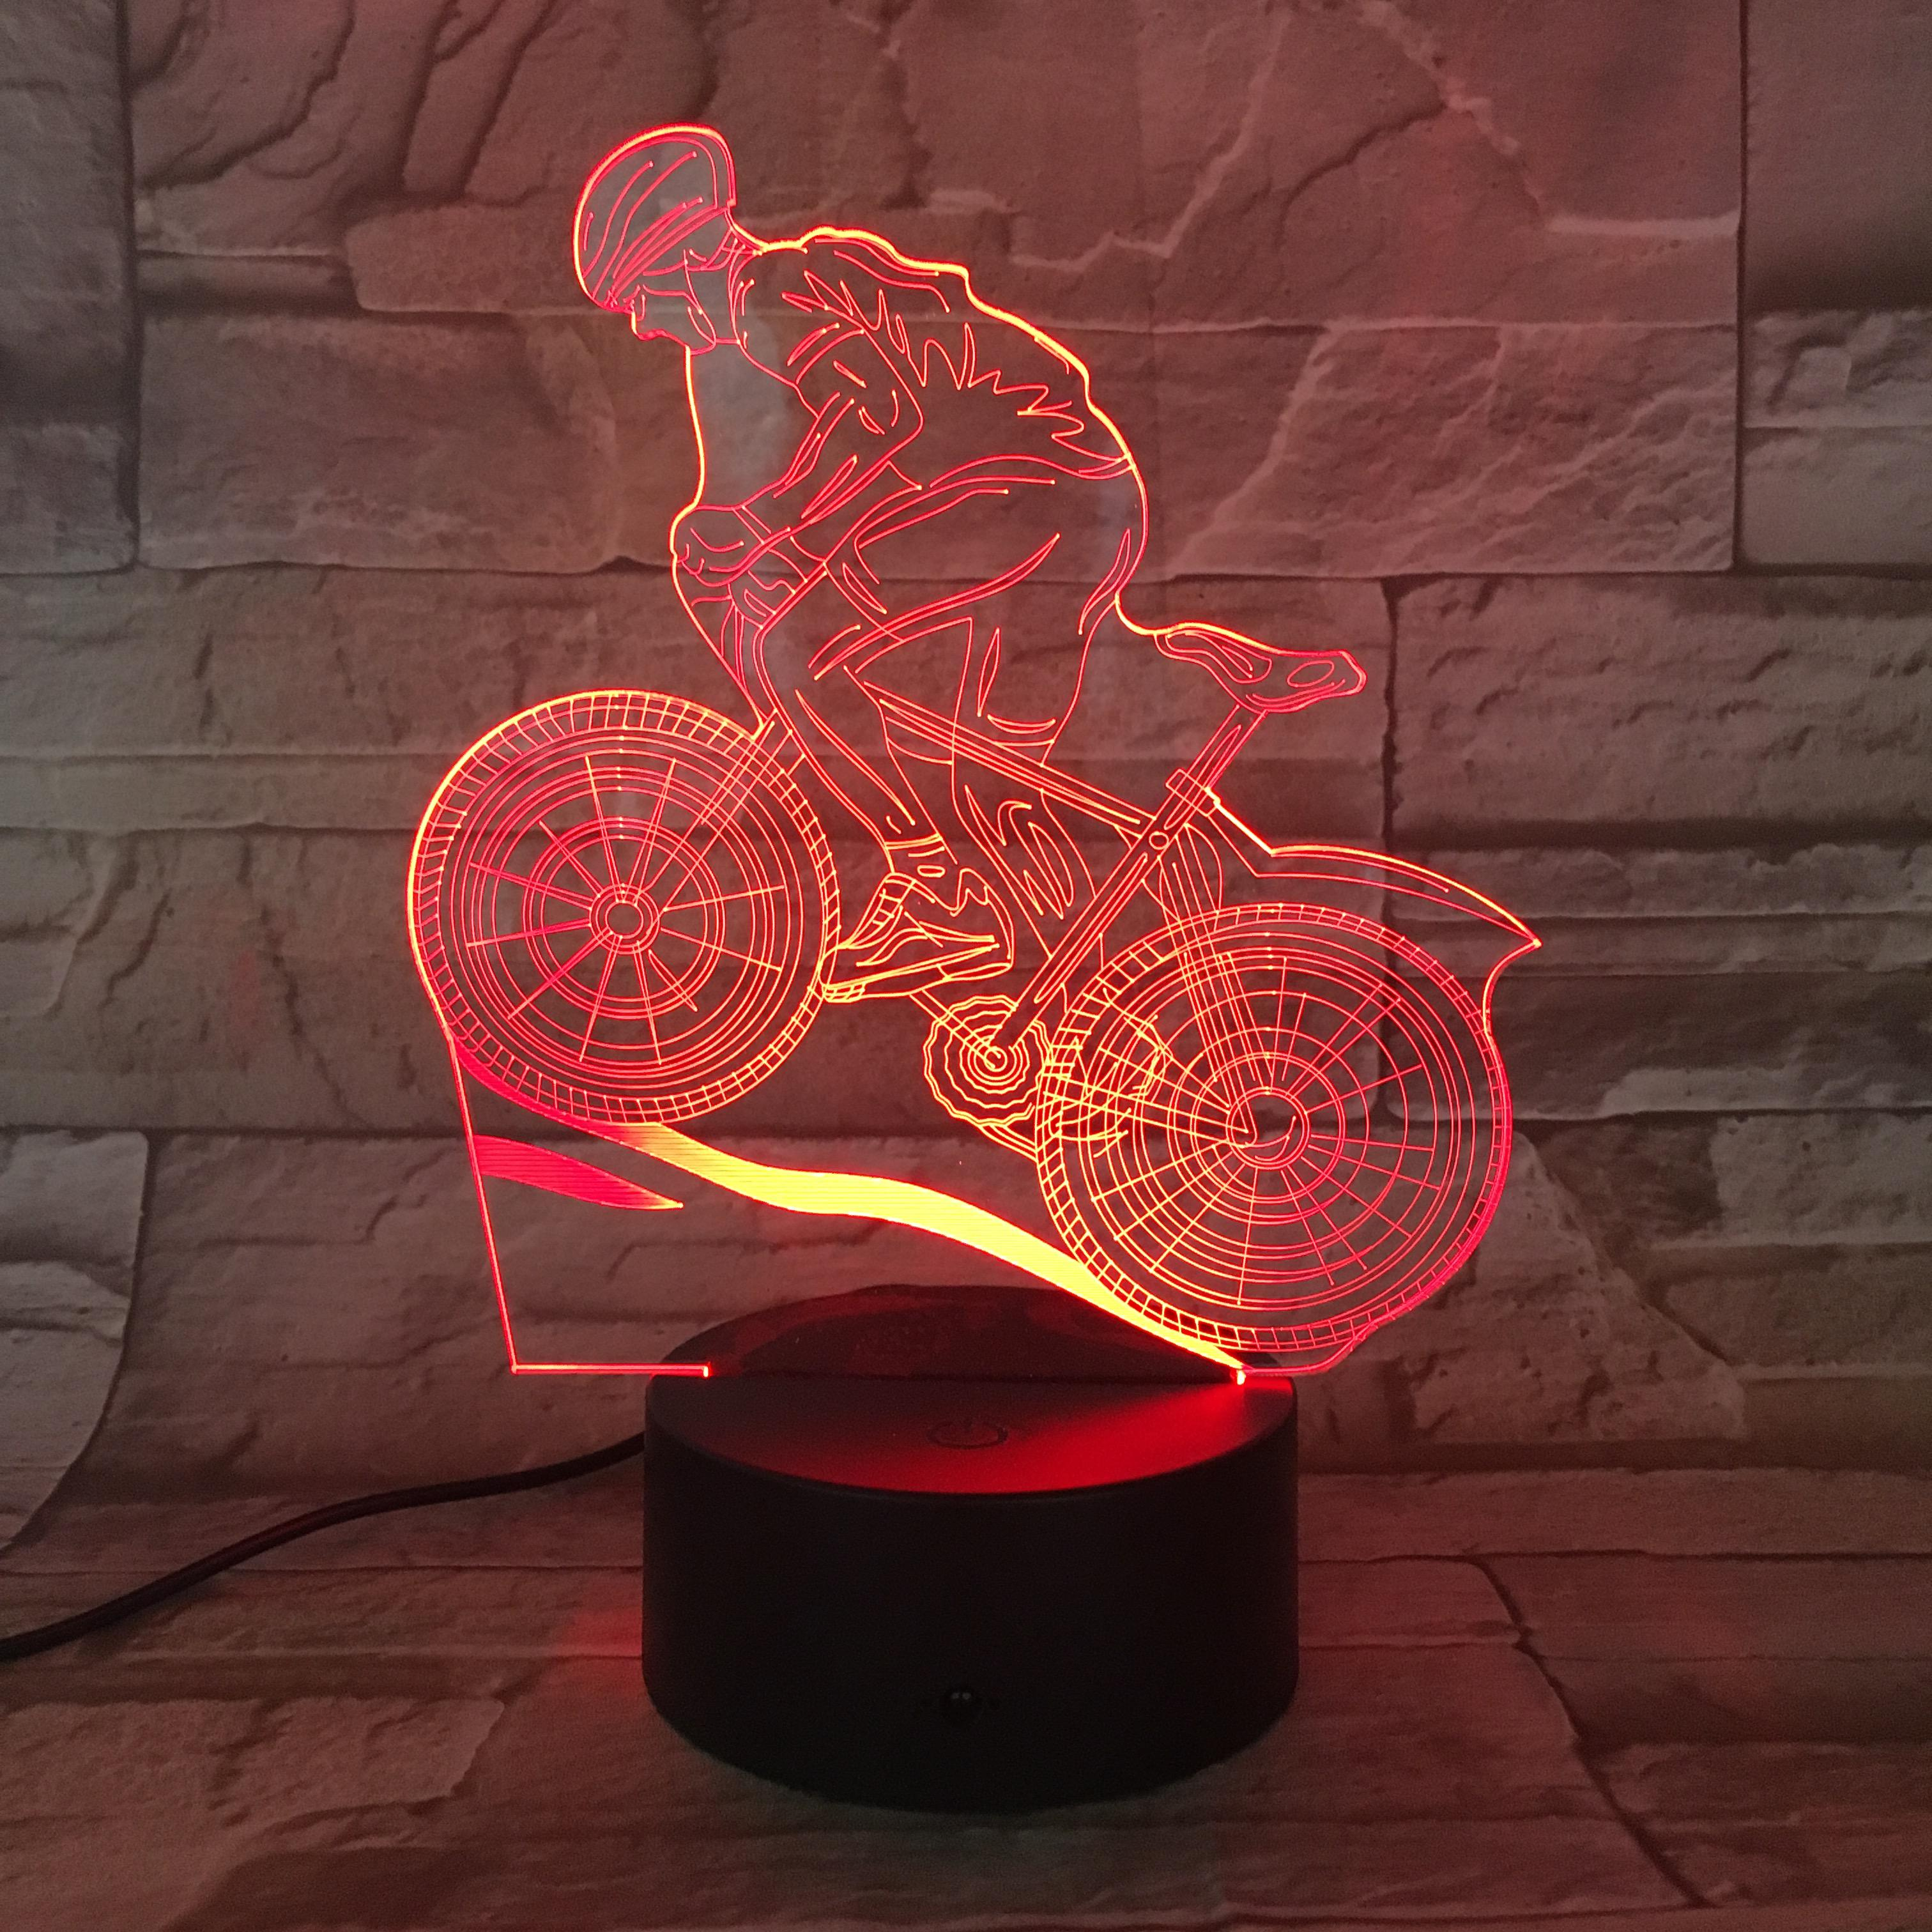 Hot Selling Sport Gifts Souvenirs Downhill Mountain Biking 3D Illusion Lamp Colour Change LED Night Light Bedroom Deco Light